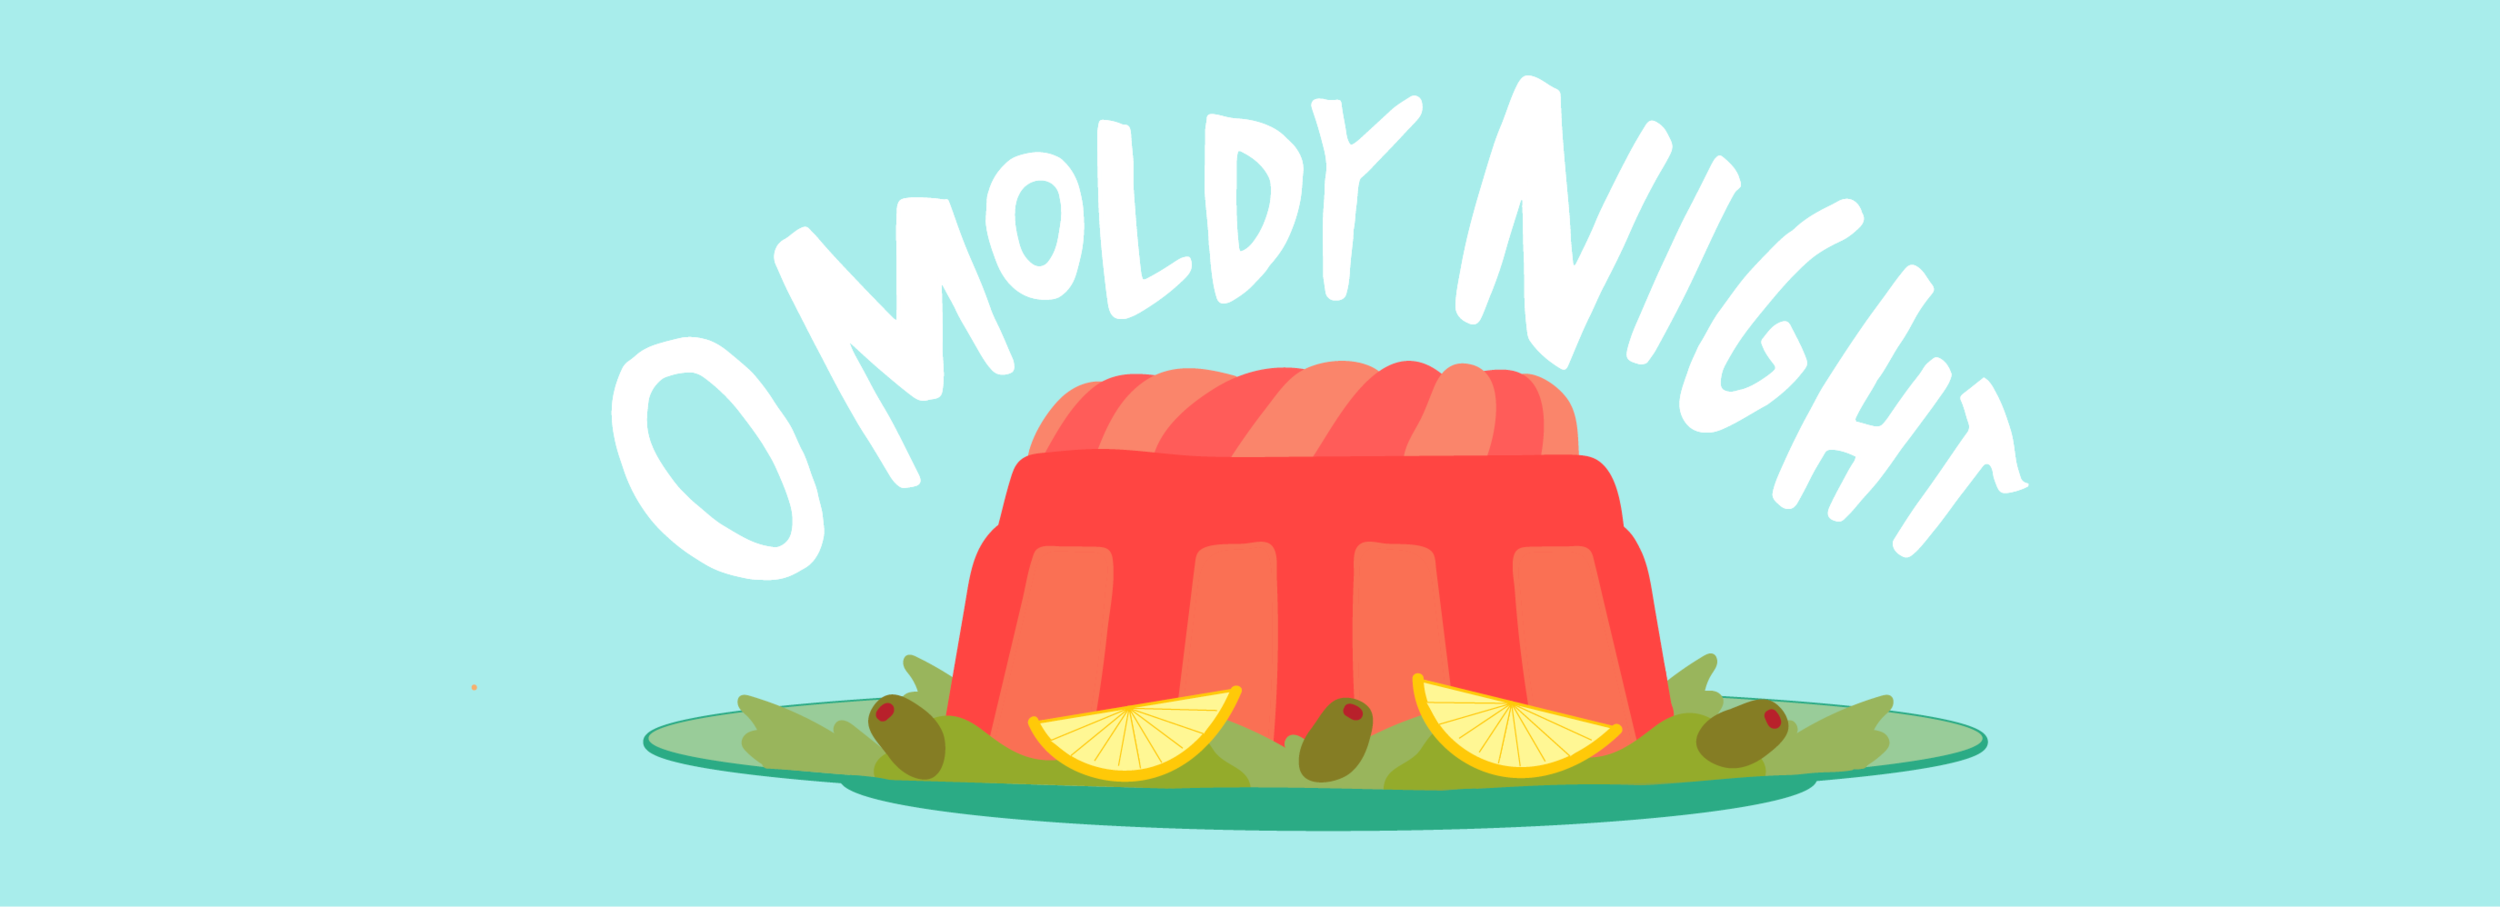 o-moldy-night-5.png